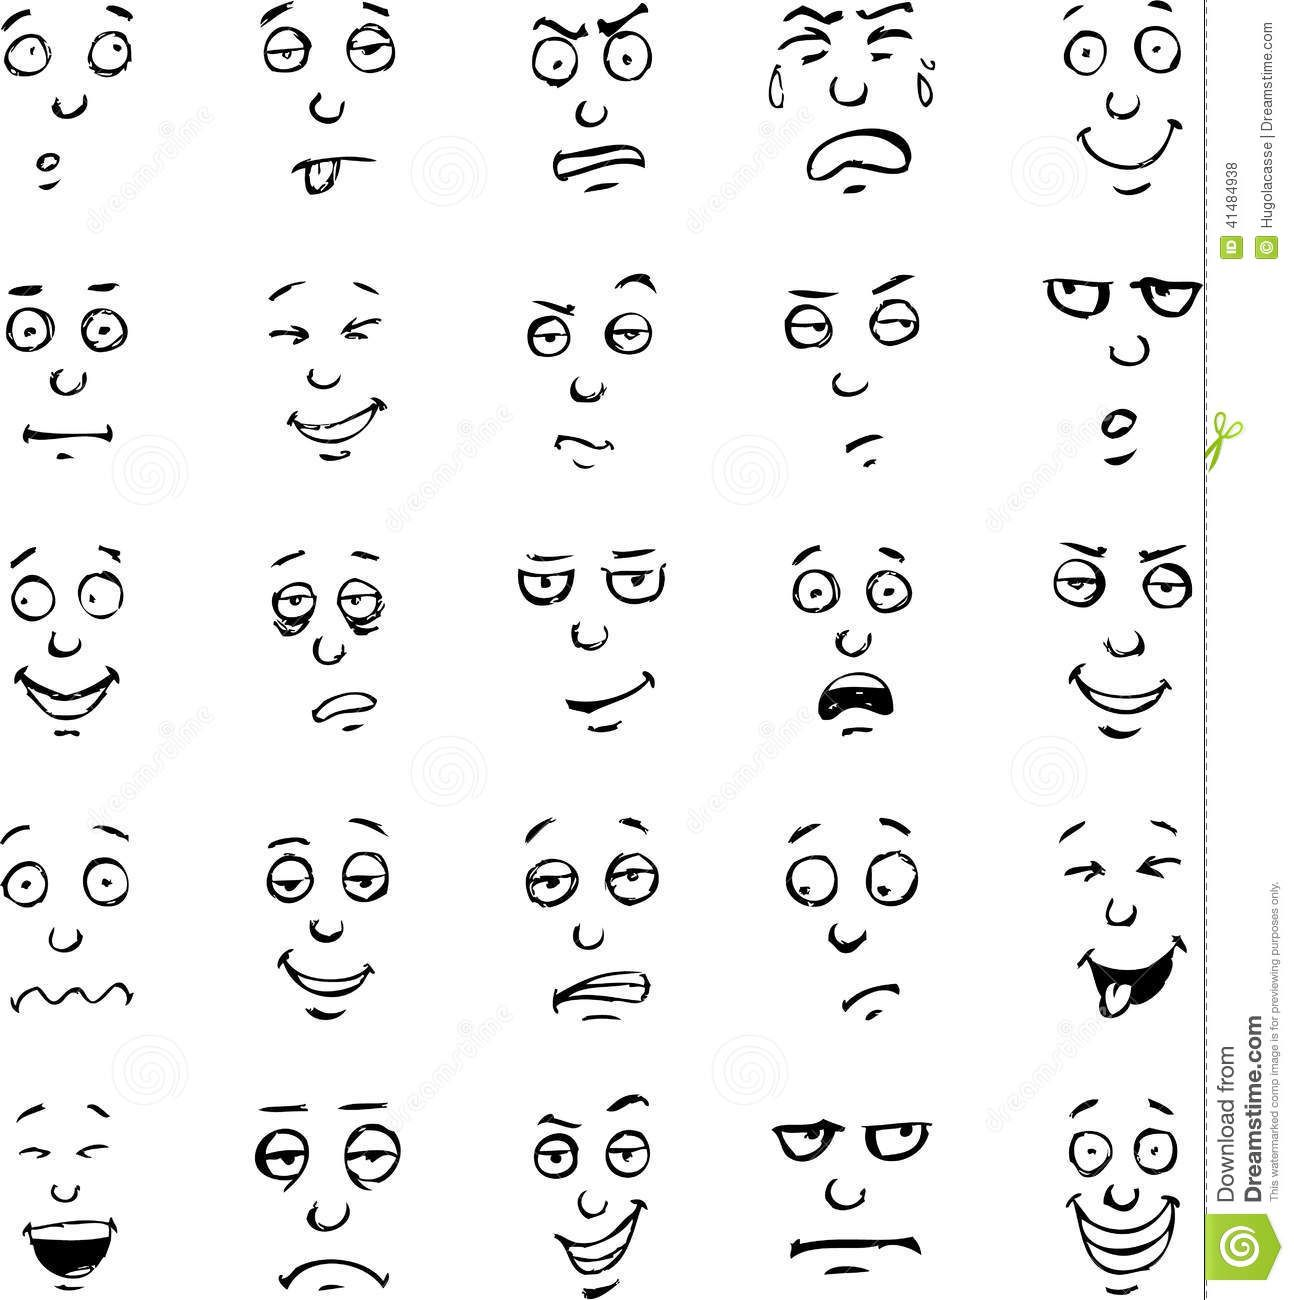 Cartoonfaceemotionshanddrawnsetvector41484938g (1294�1300) Bullet Journal  Pinterest Cartoon, Faces And Searches Learn How How To Draw A Zombie